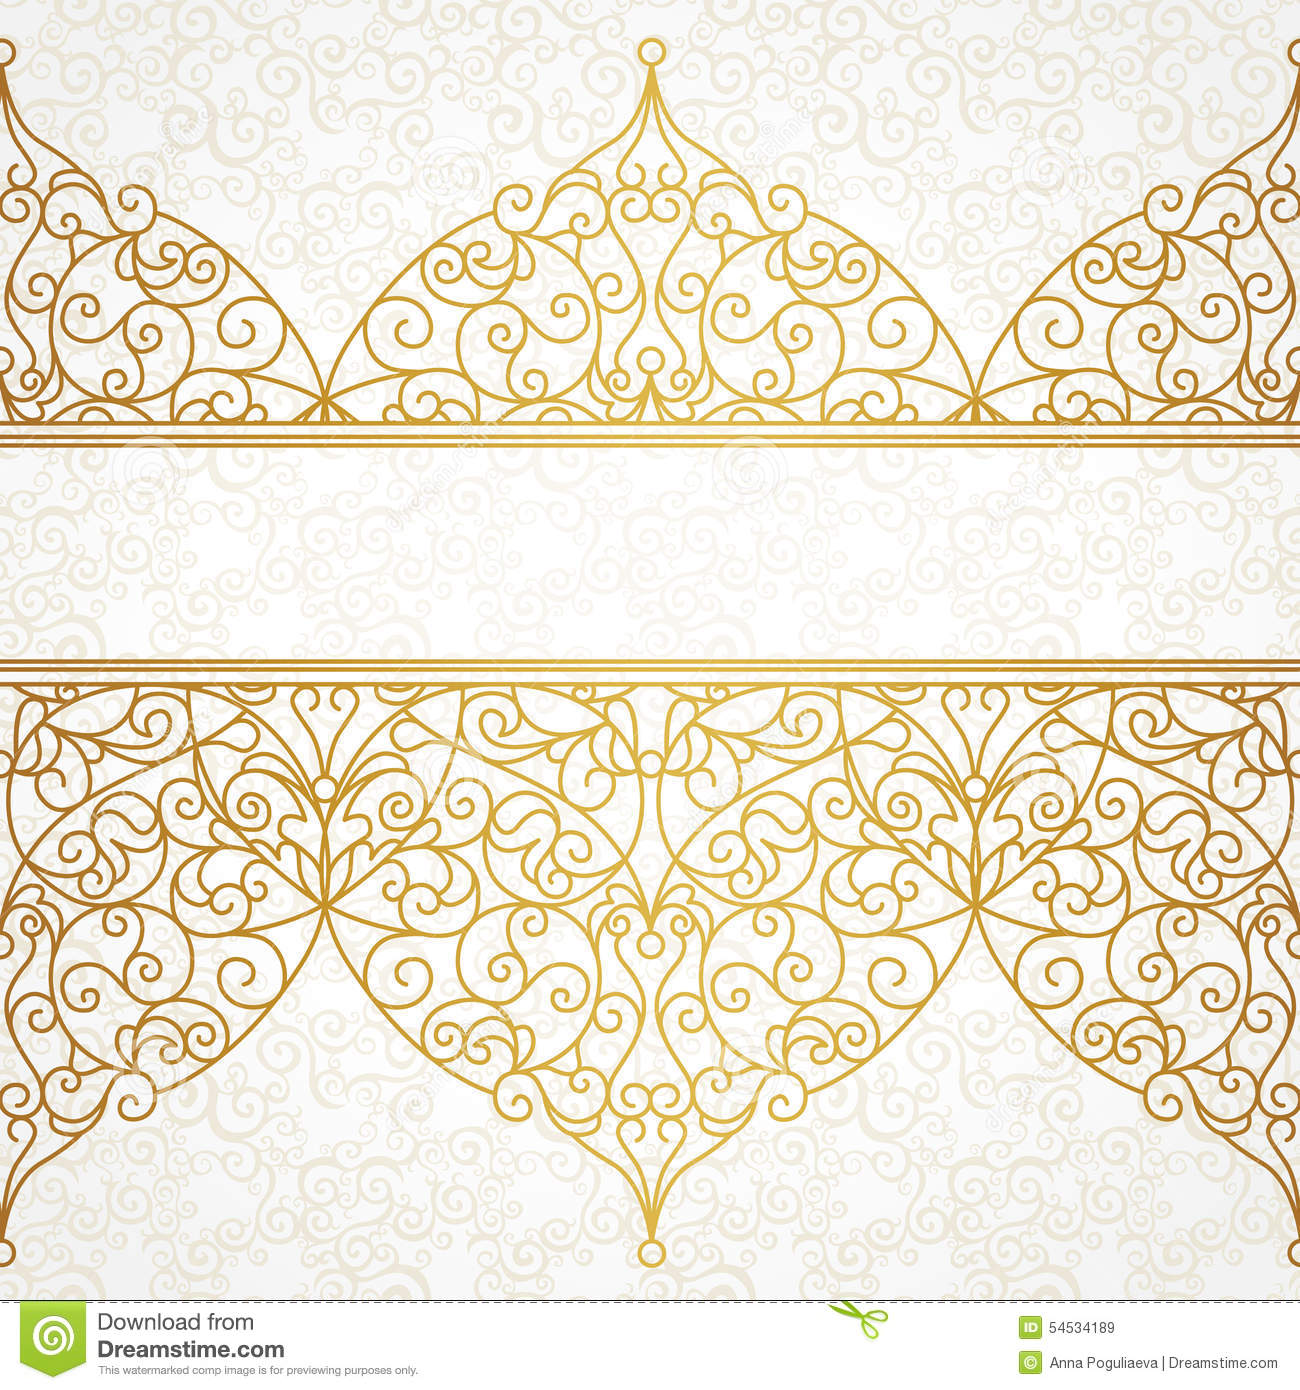 Vintage baroque floral golden ornament vector stock vector image - Vector Ornate Seamless Border In Eastern Style Stock